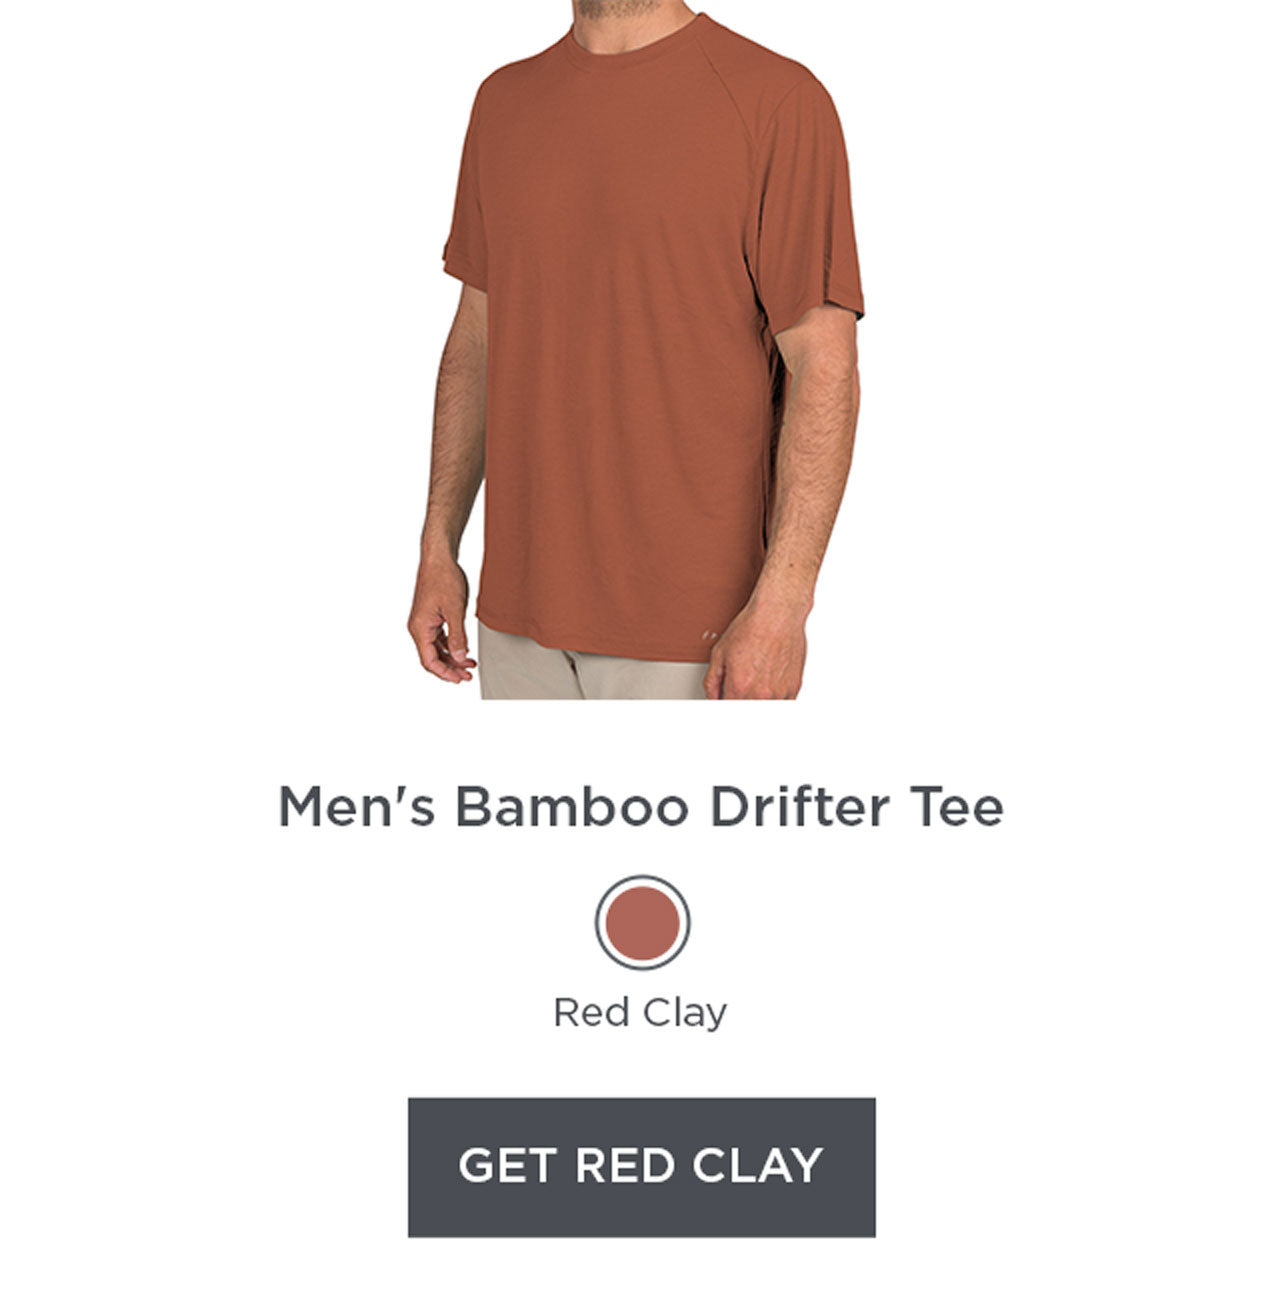 Drifter Tee - Red Clay